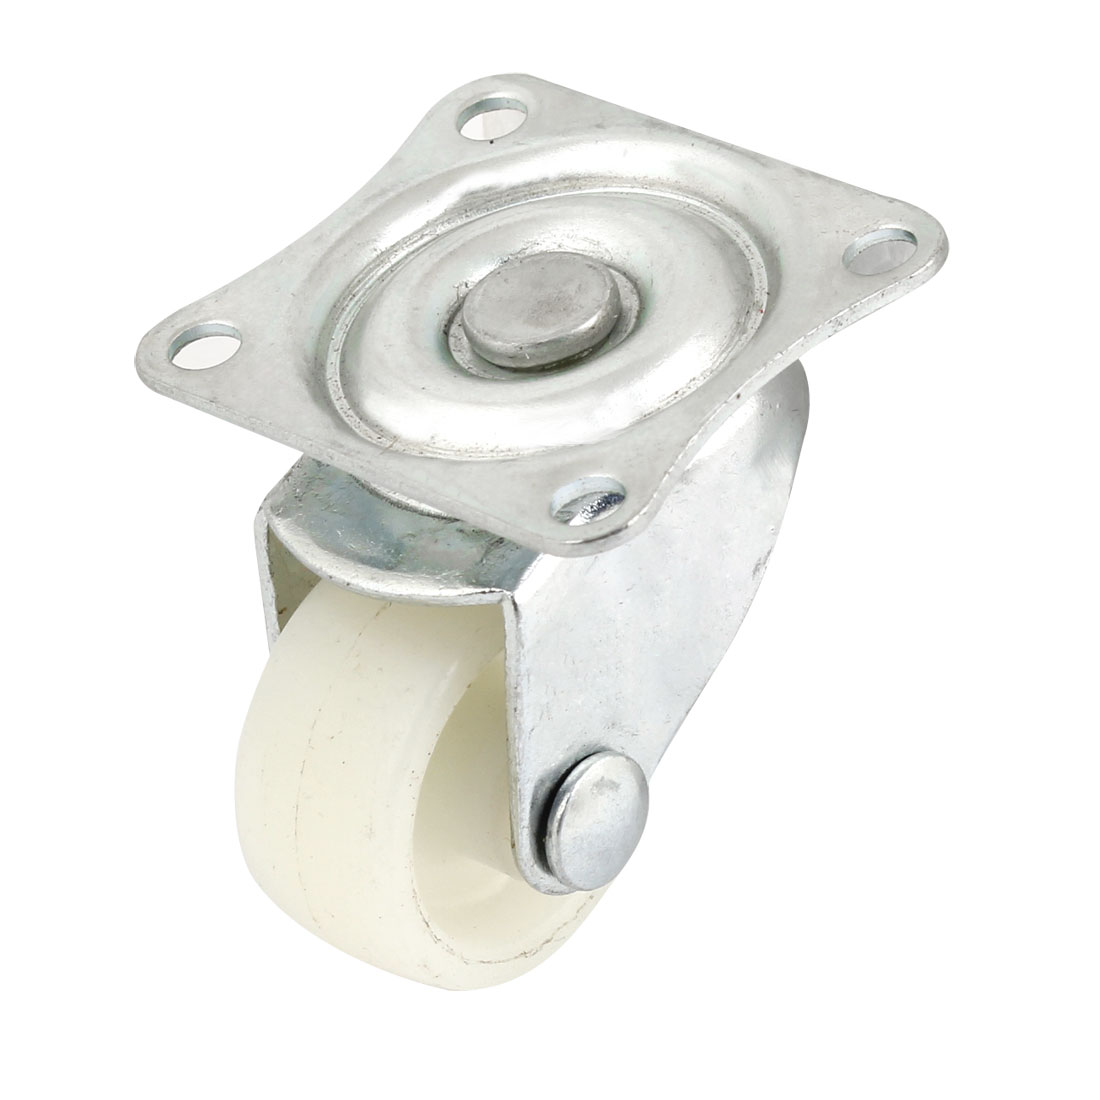 "White Plastic 0.94"" Single Wheel Light Duty Swivel Plate Caster"